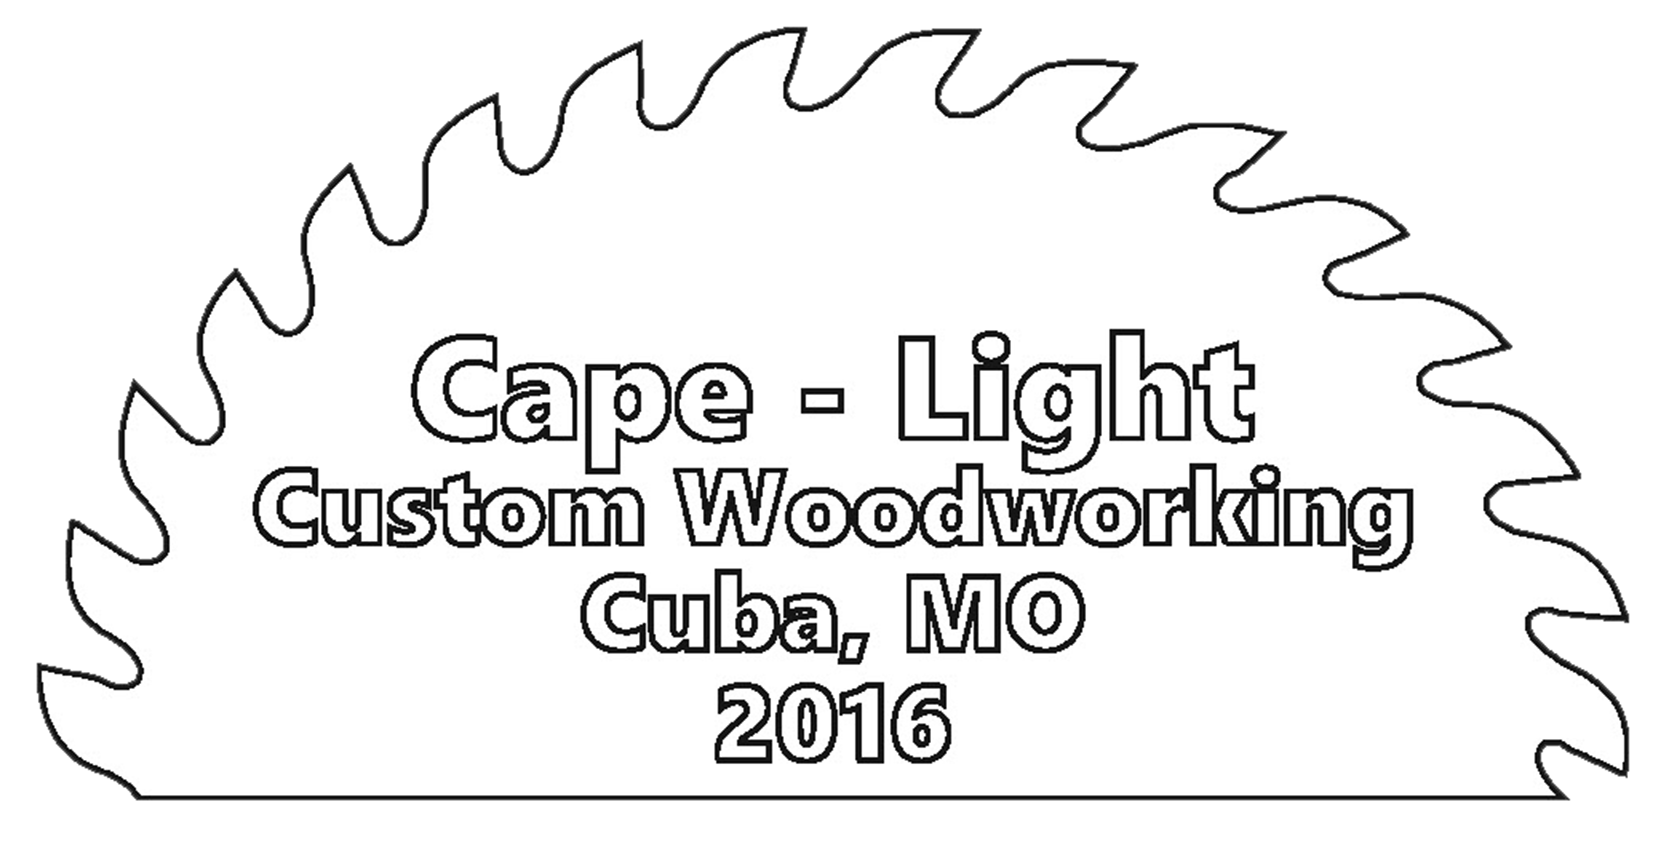 Cape-Light Custom Woodworking